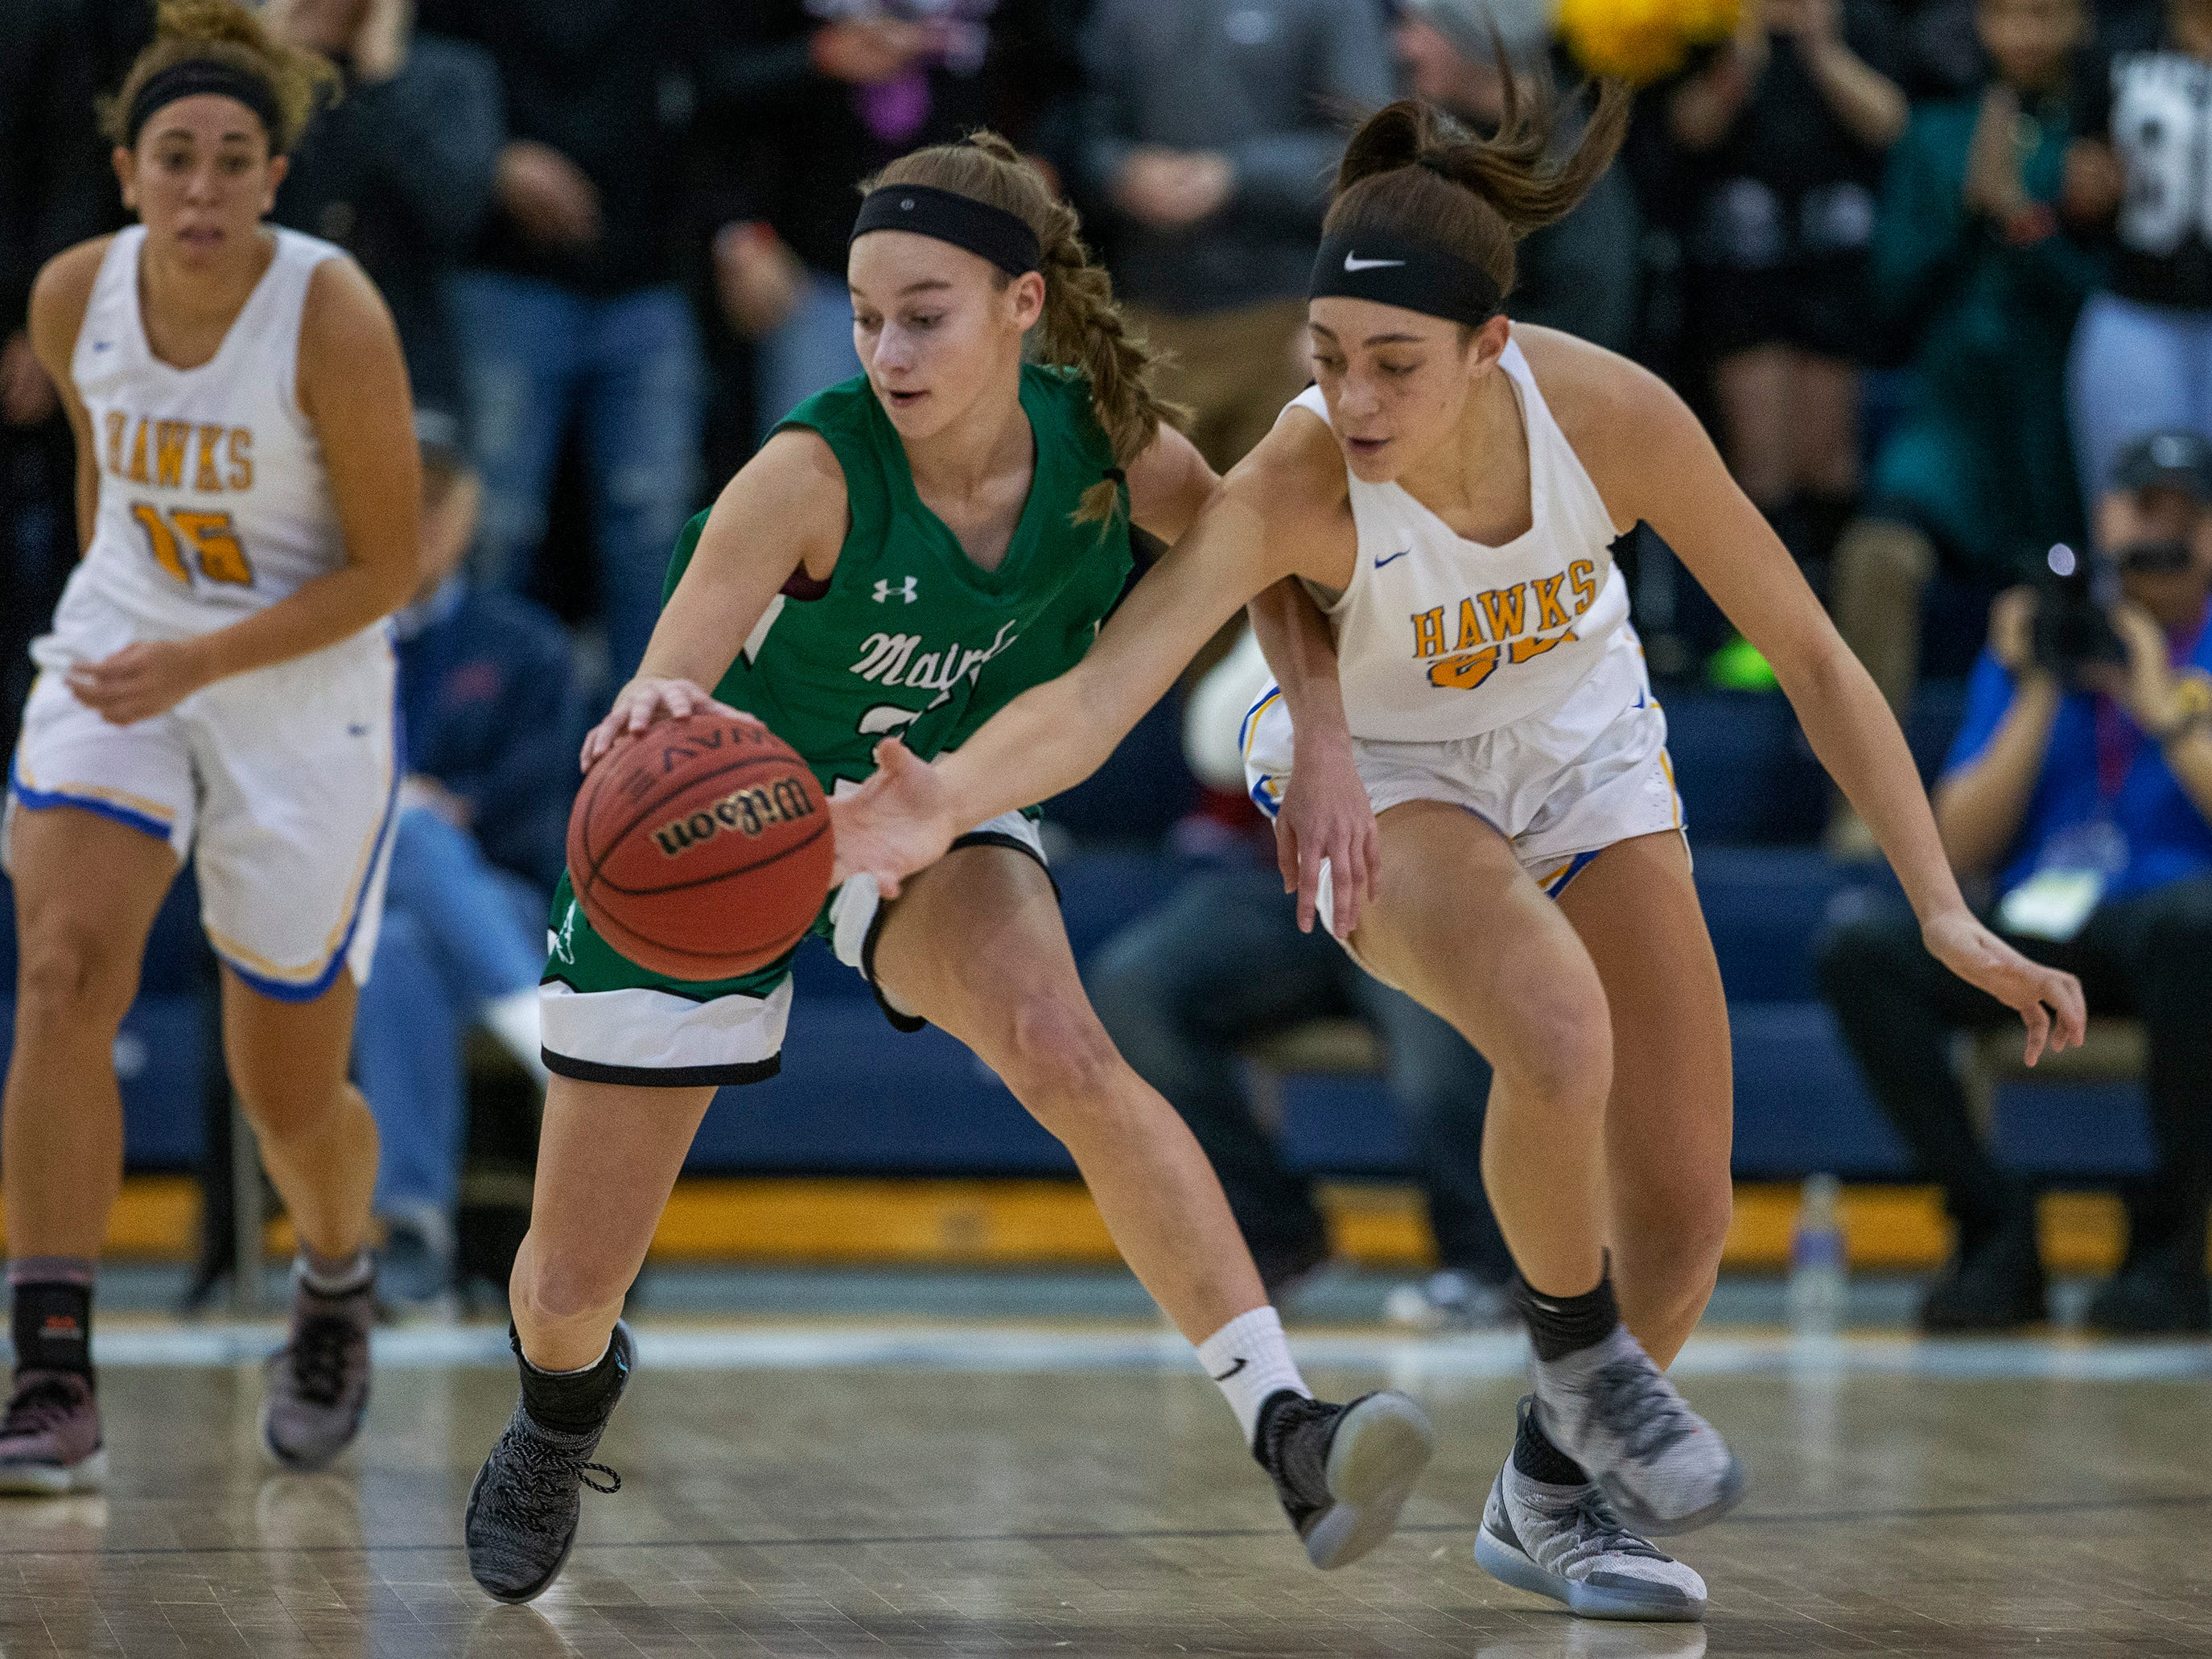 Manchester Girls Basketball vs Mainland in Tournament of Champions opening round game in Toms River on March 12, 2019